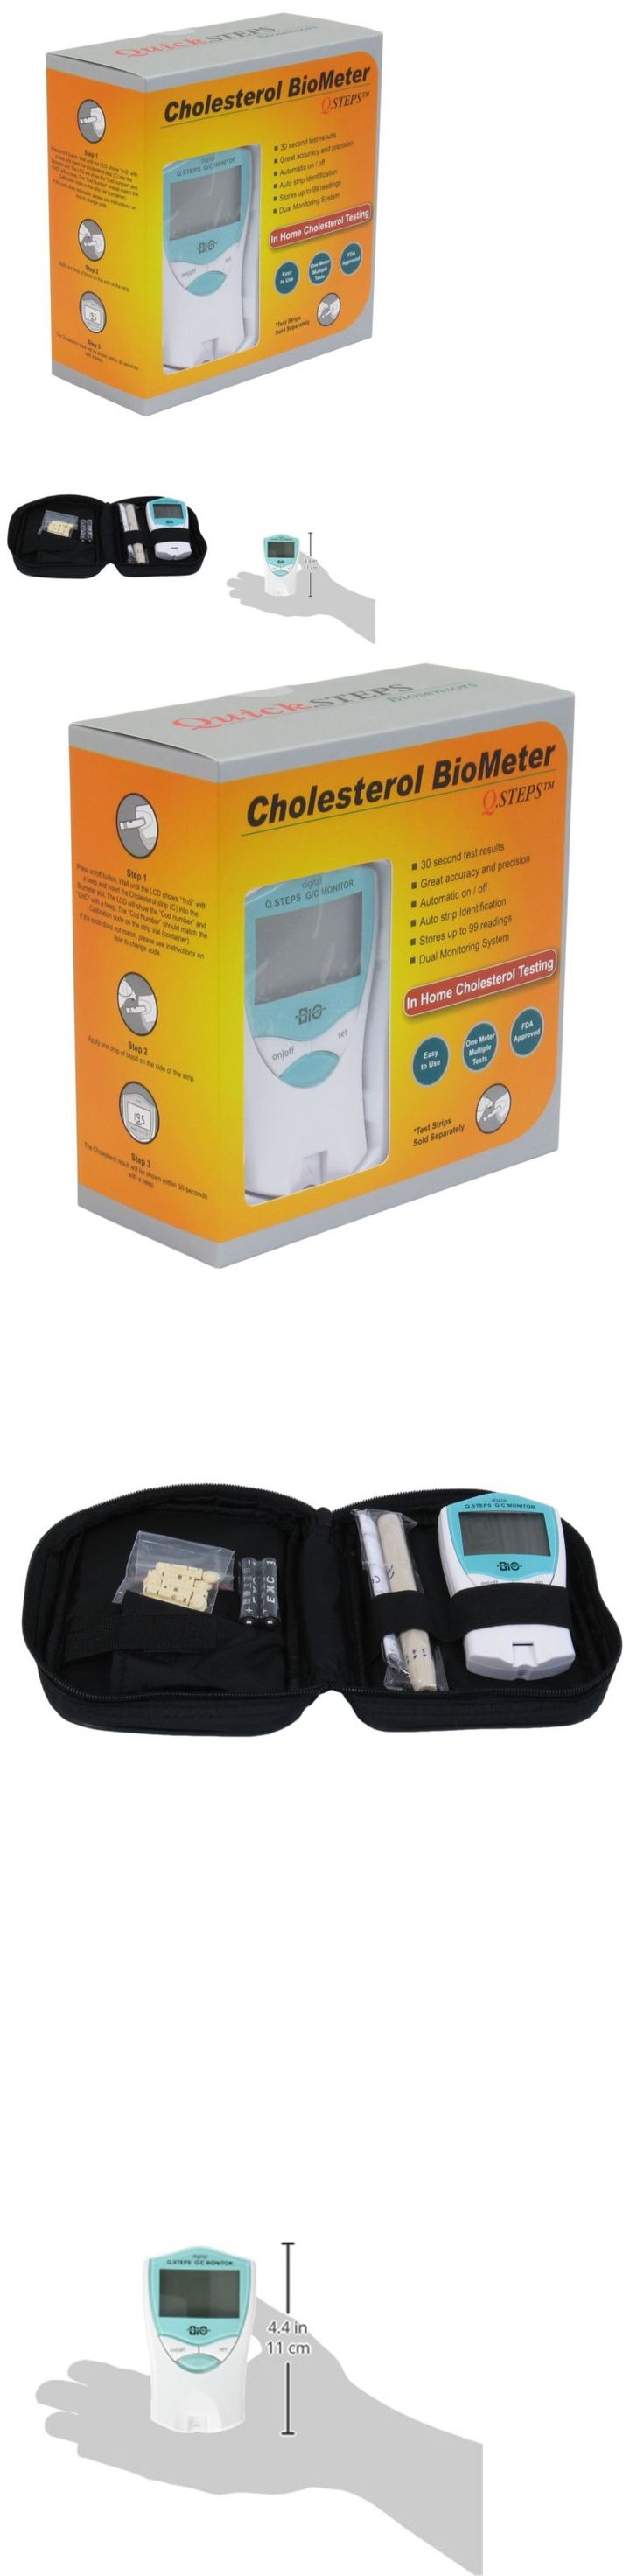 Cholesterol Testing: Cholesterol Check Glucose Blood Sugar Test Meter Biometer Monitoring System New -> BUY IT NOW ONLY: $65.47 on eBay!